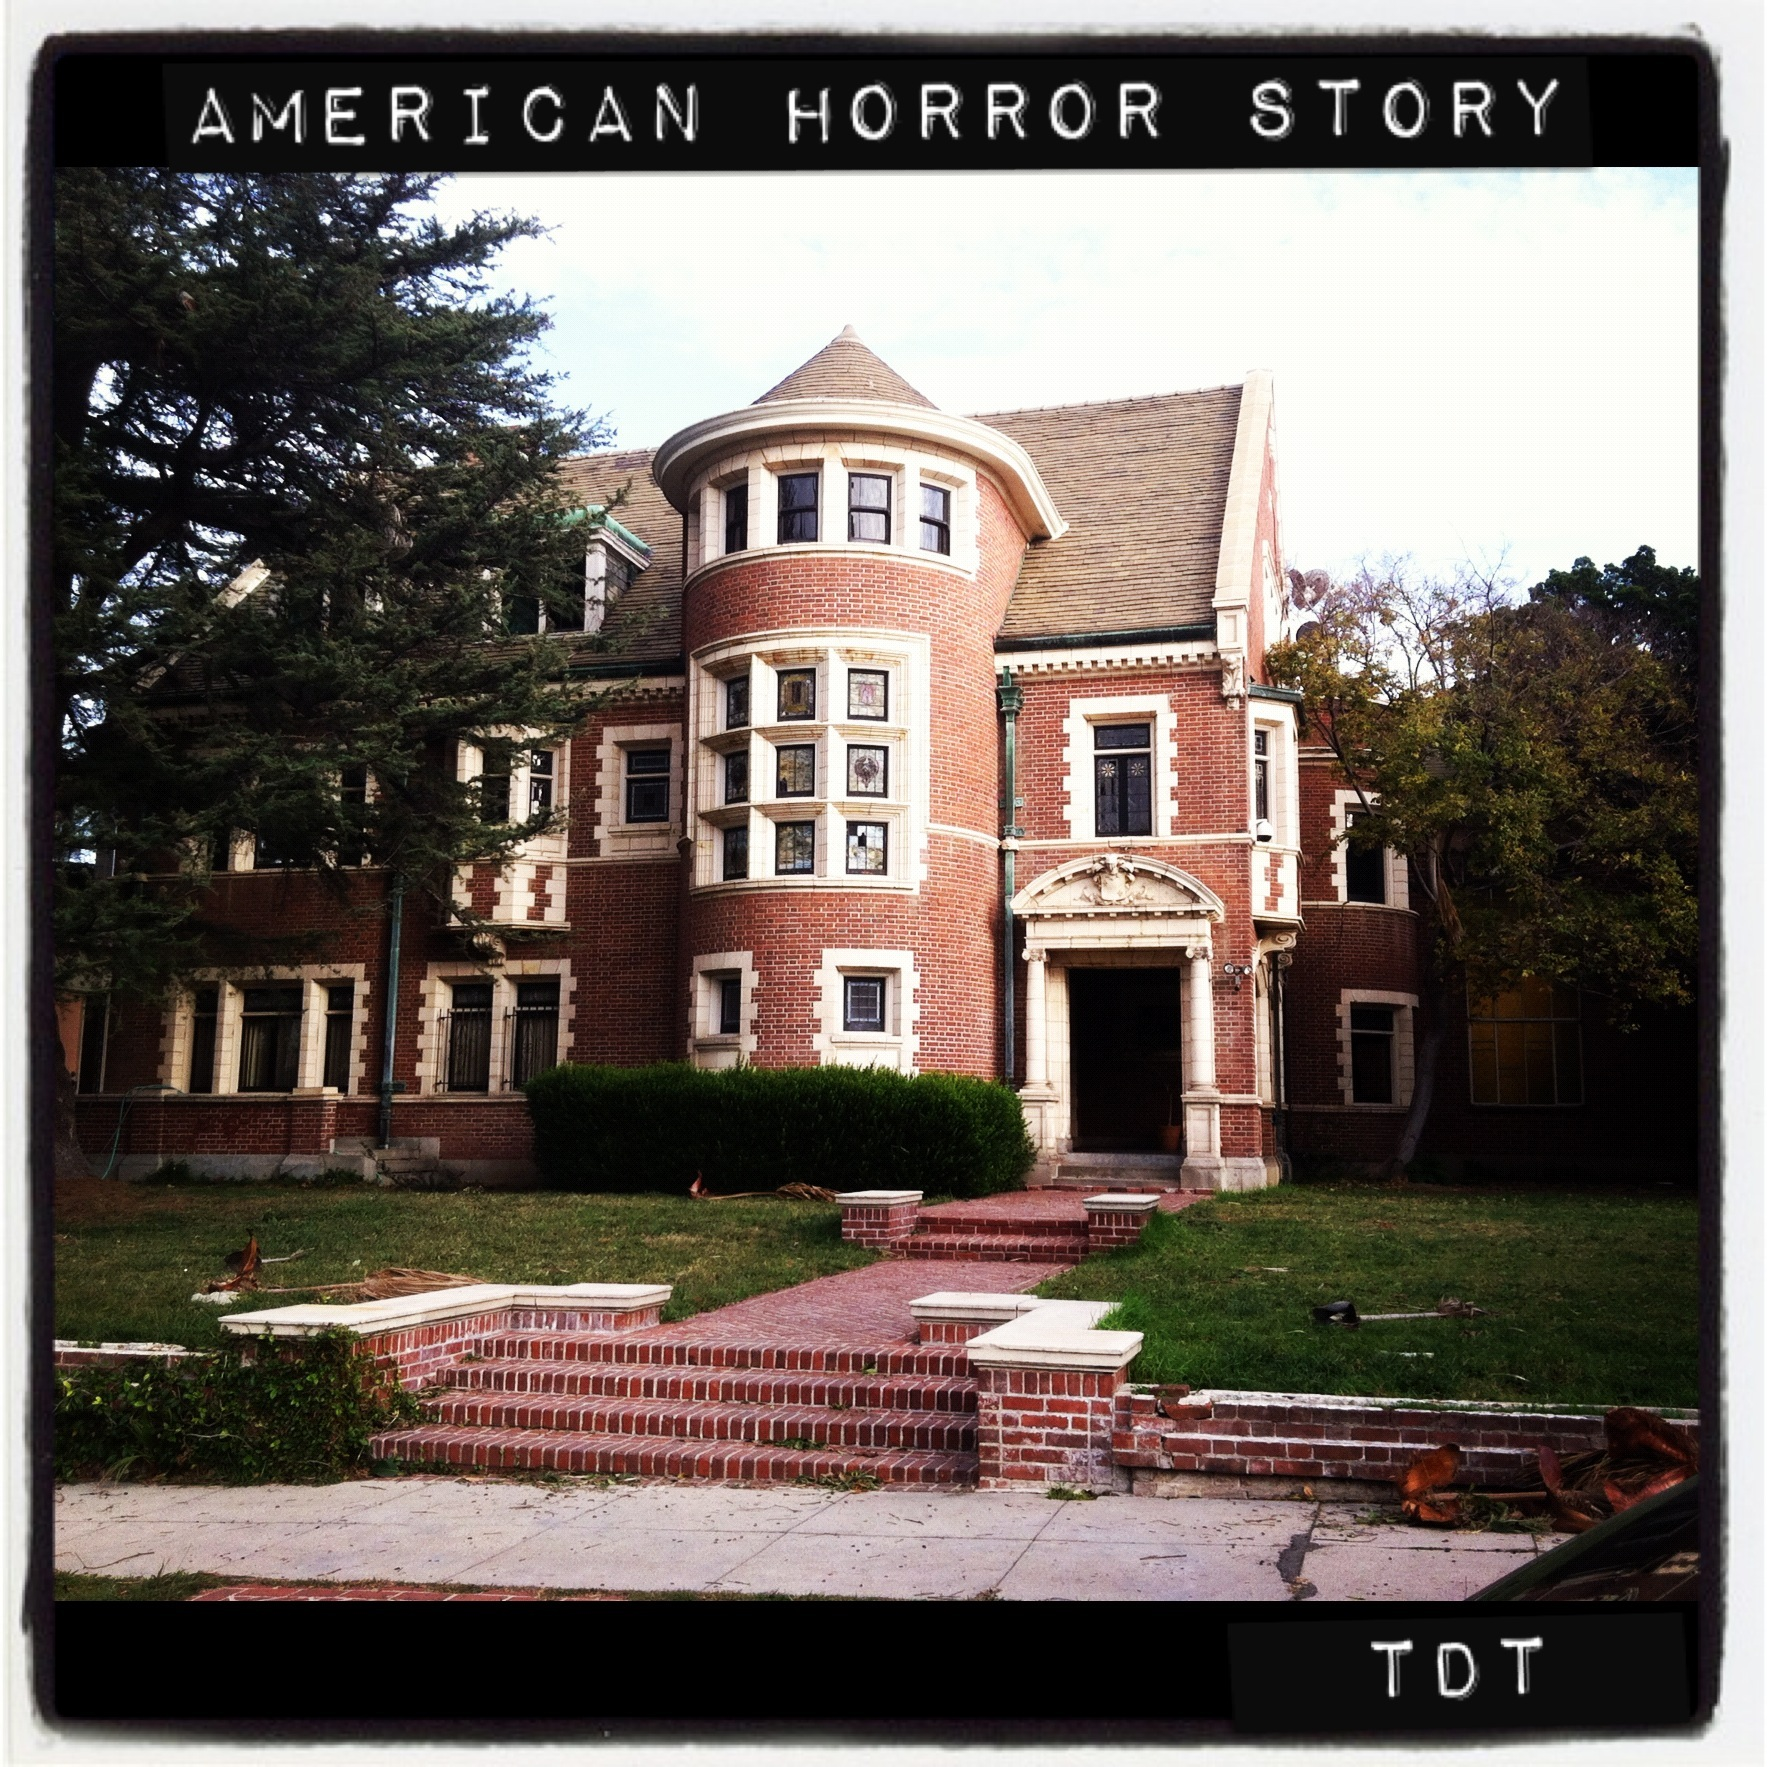 American horror story house 28 images american horror for Murder house for sale american horror story